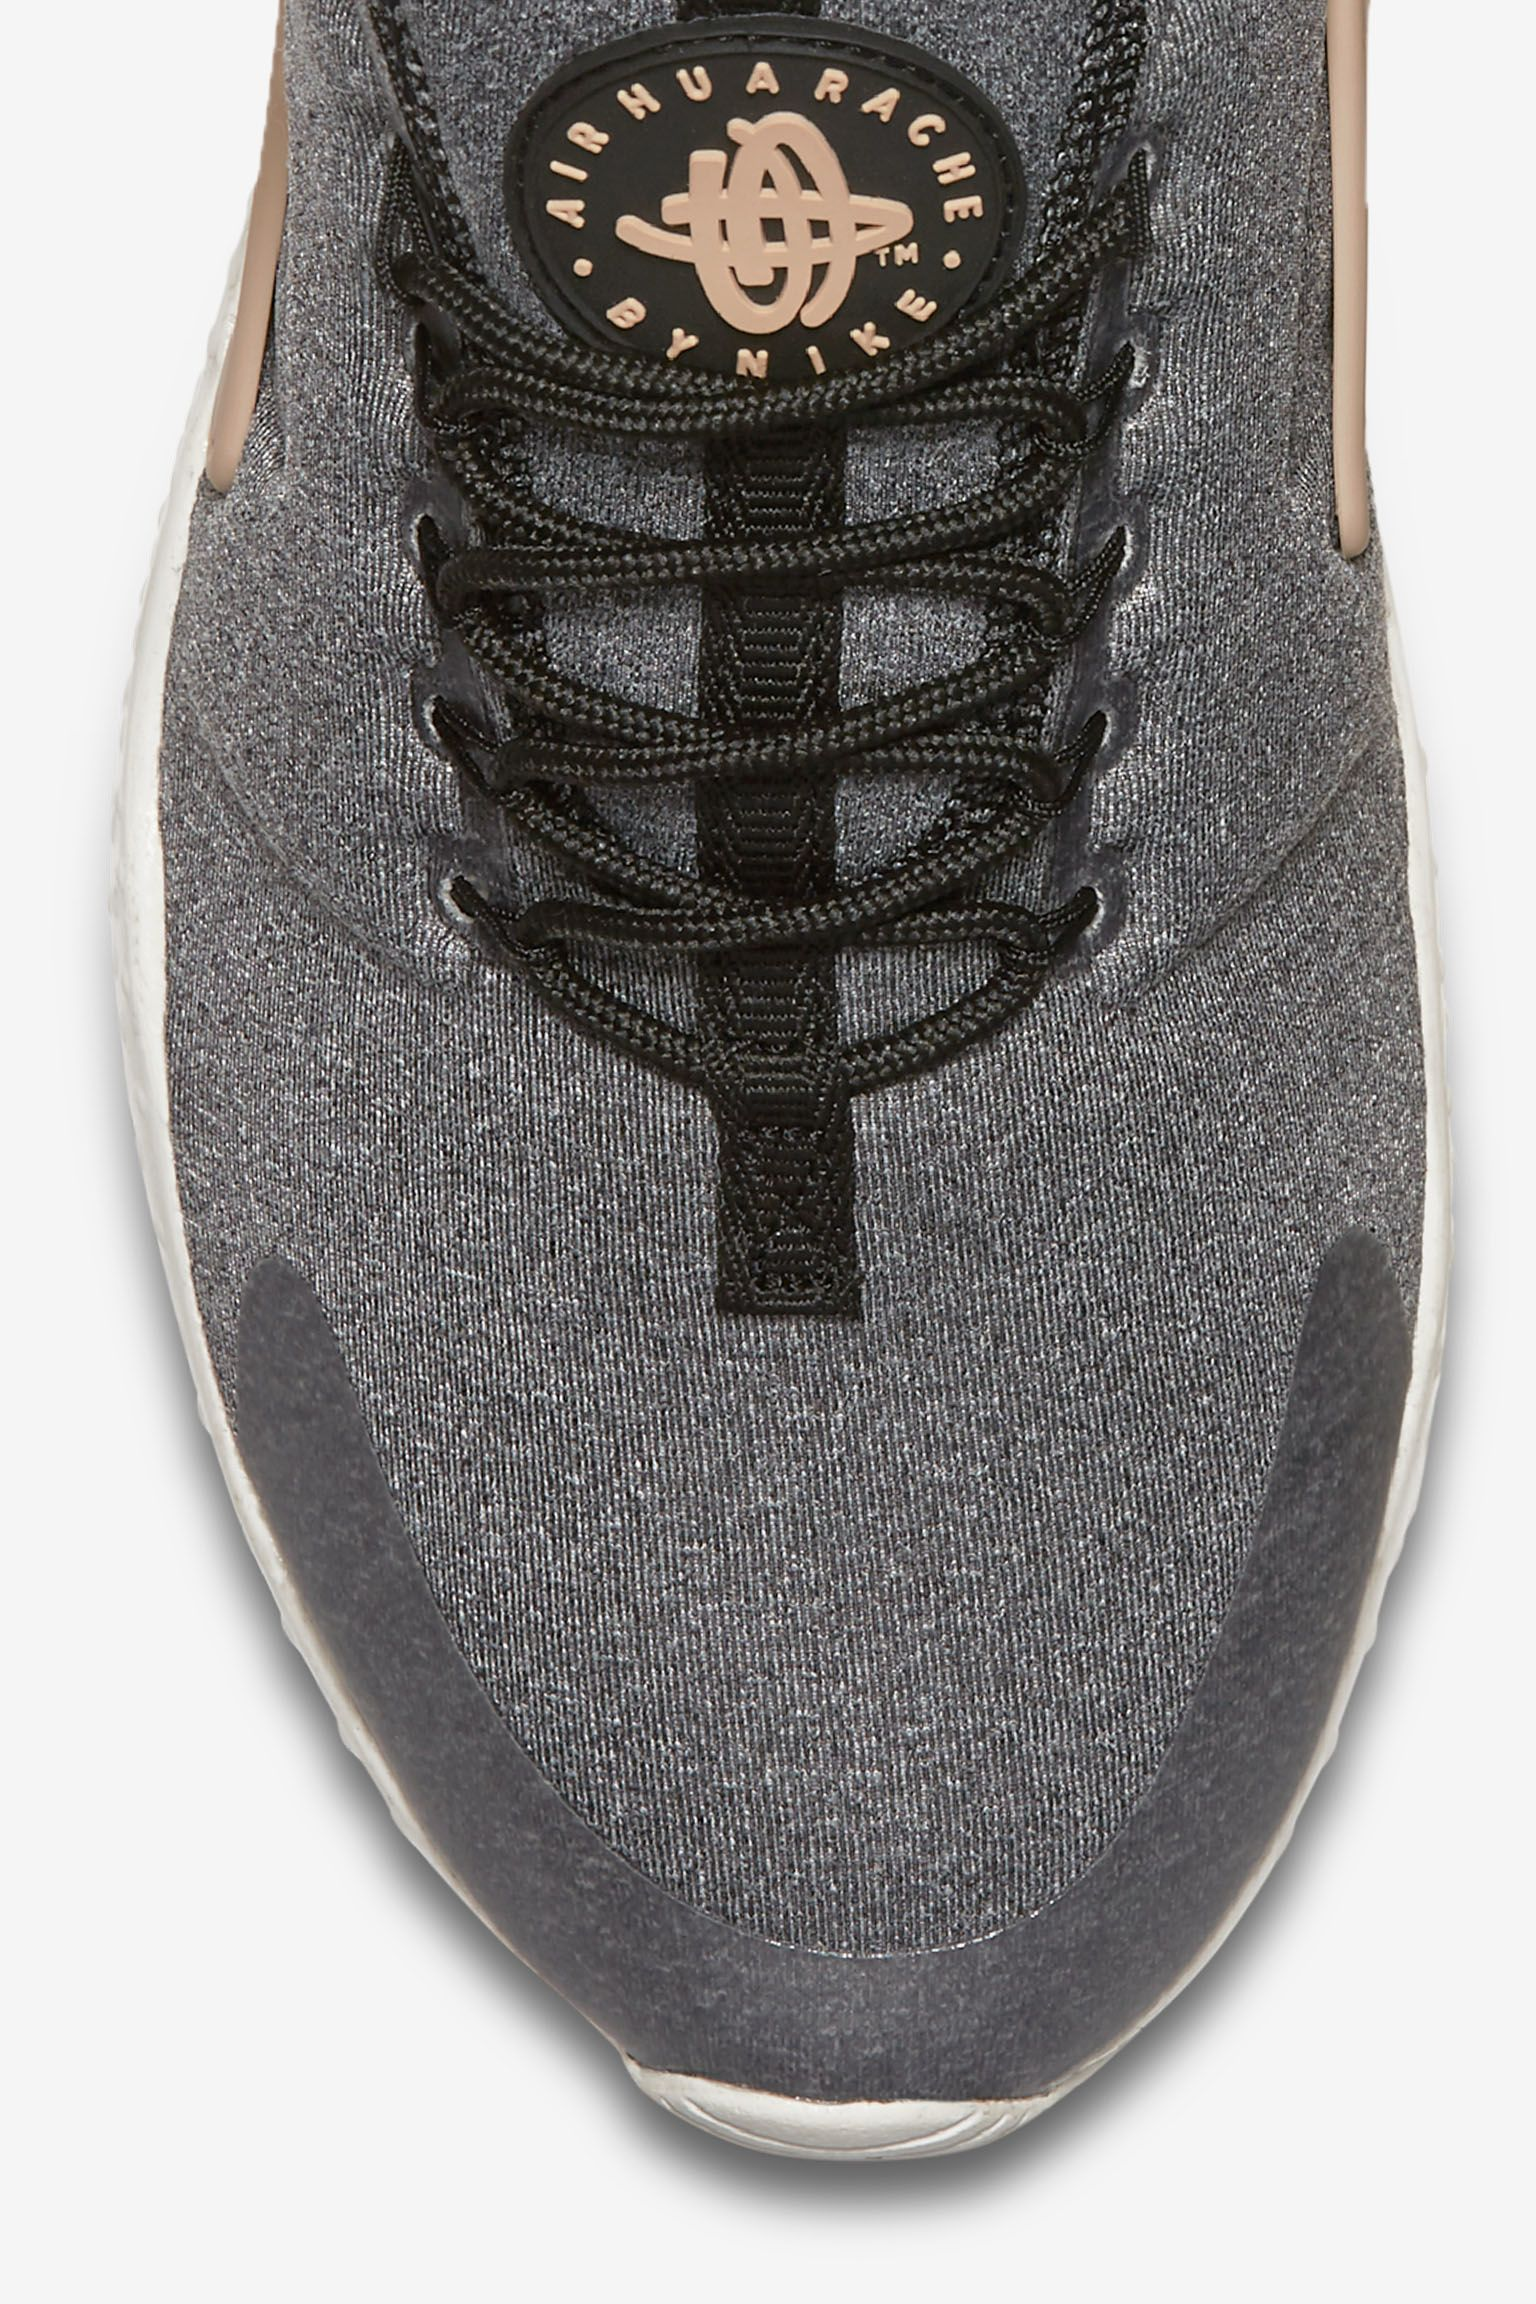 "Buty damskie Nike Air Huarache Ultra SE ""Black & Vachetta Tan"""